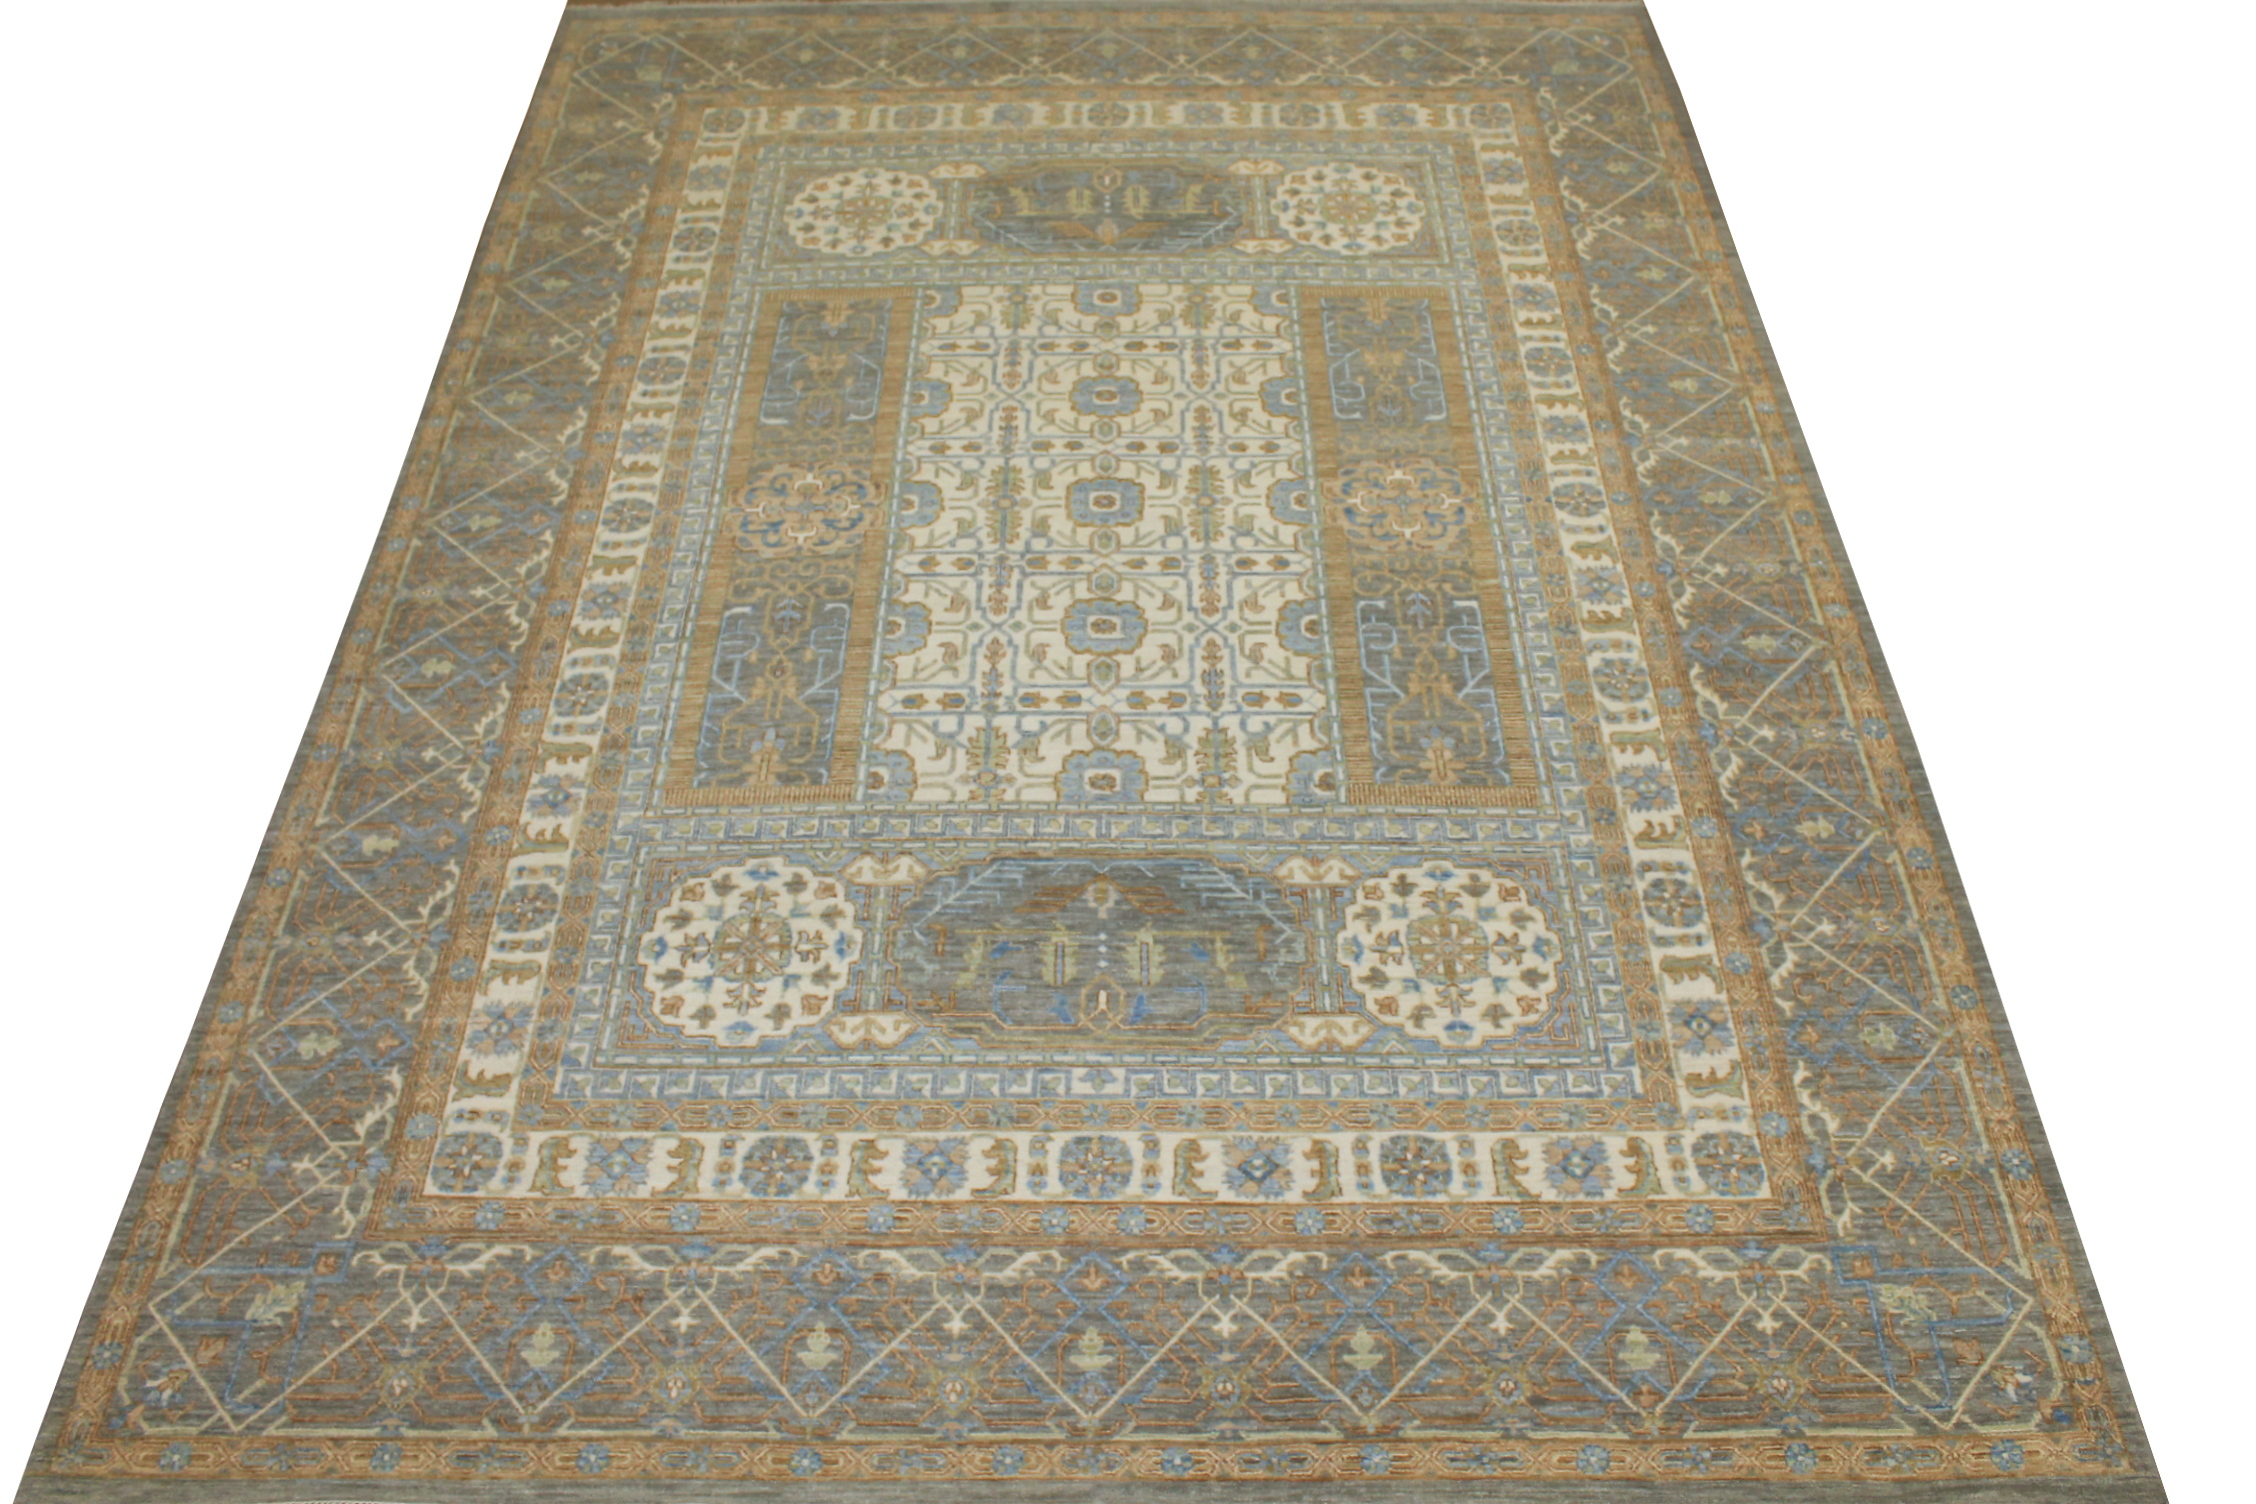 9x12 Traditional Hand Knotted Wool Area Rug - MR025107